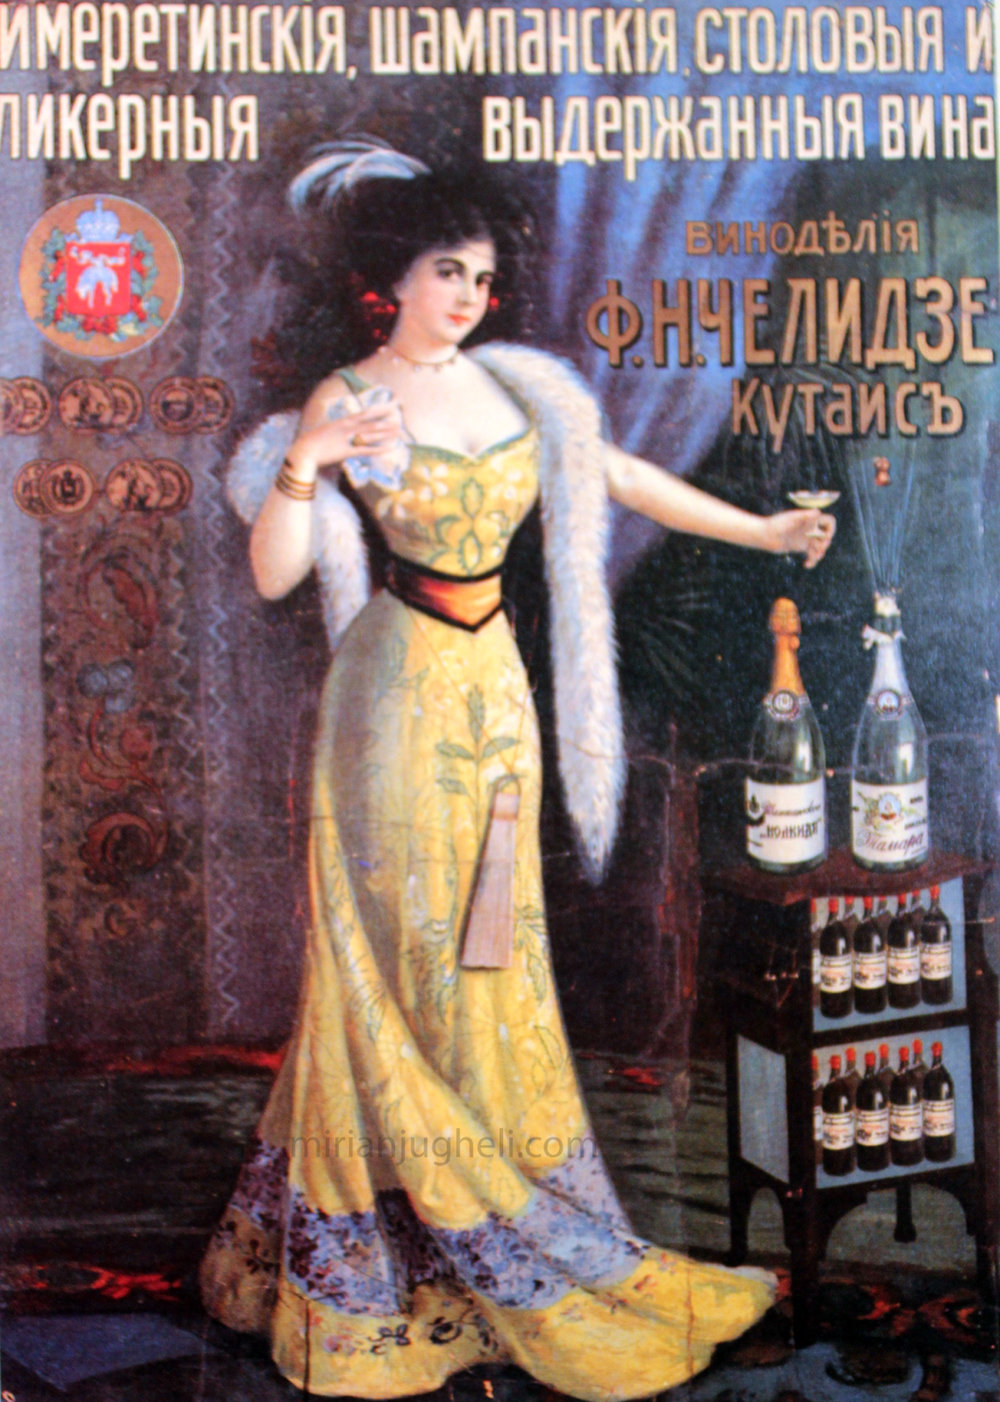 20th_century_georgian_advertising-22.jpg